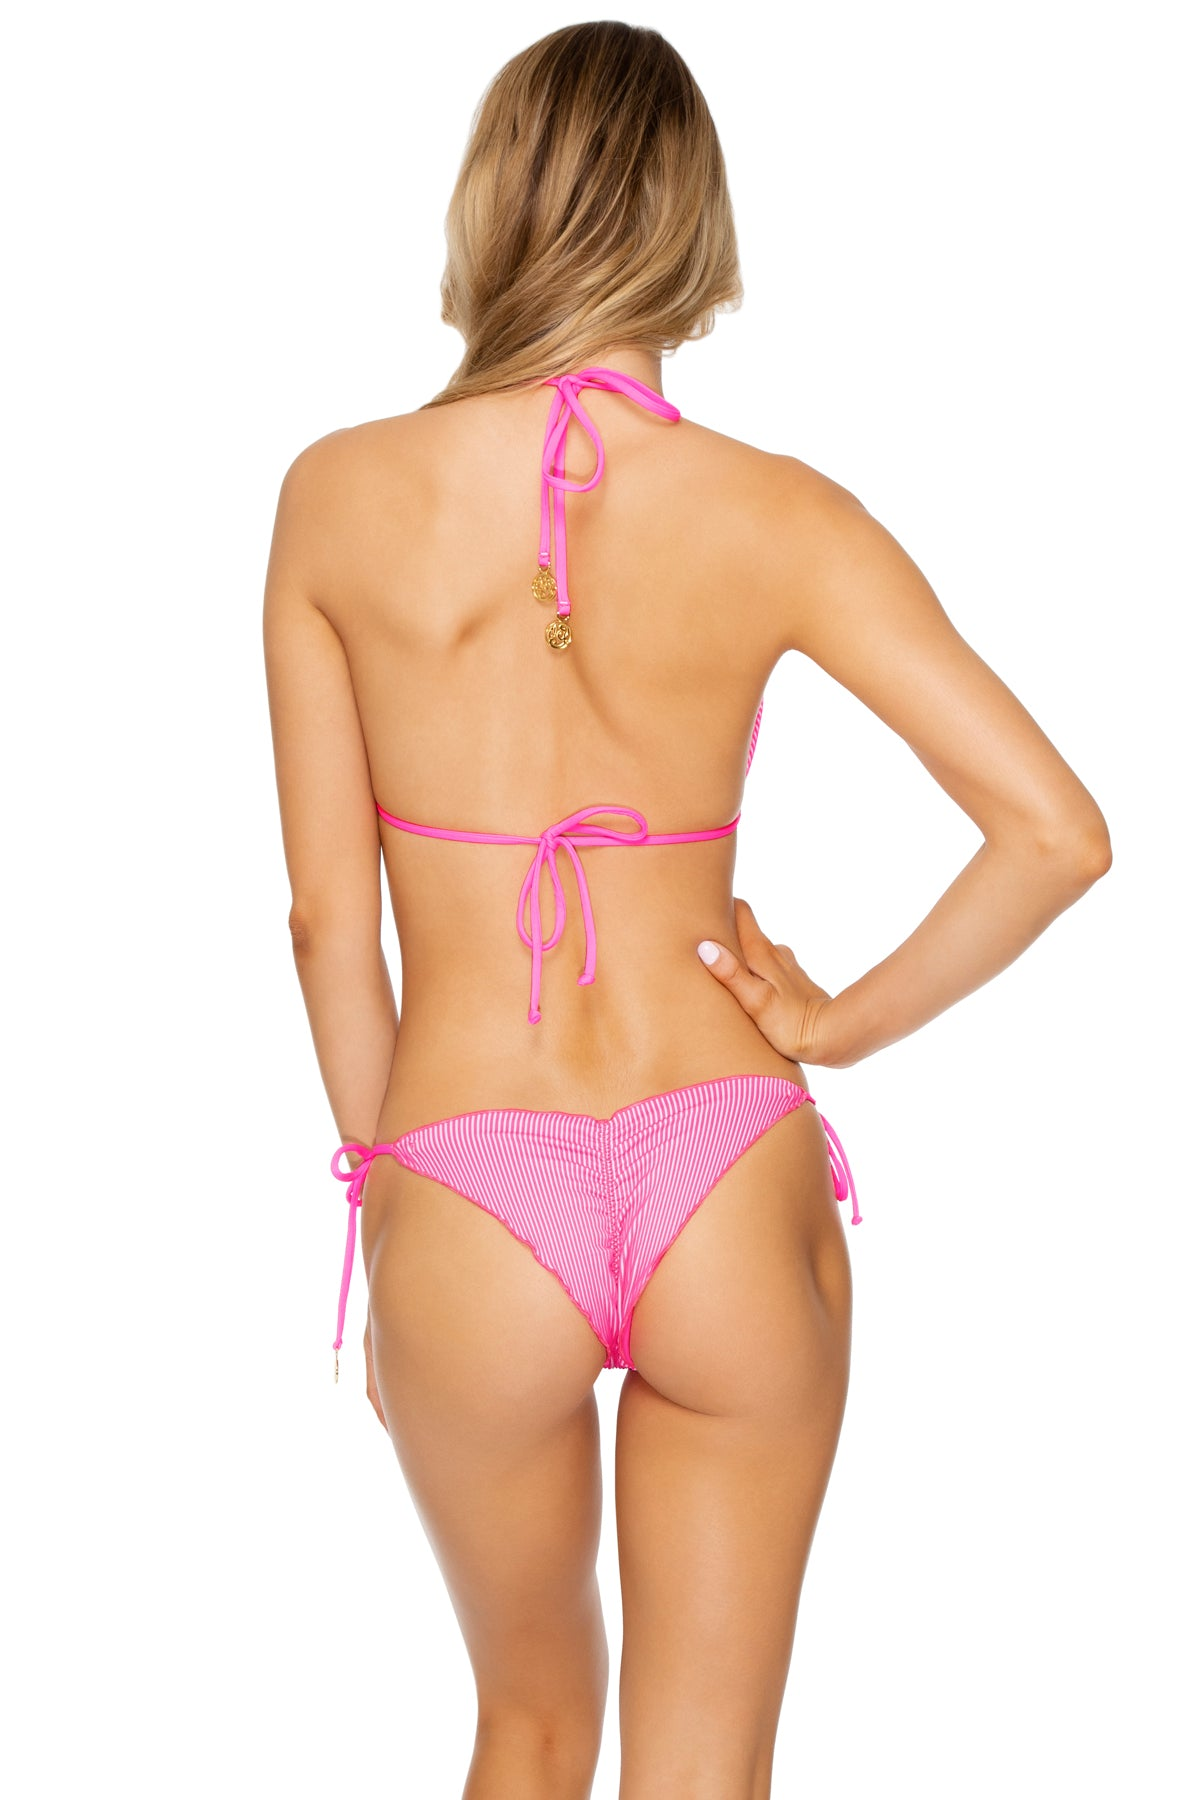 LULI BABE IN MIAMI - Triangle Top & Wavey Ruched Back  Tie Side Bottom • Barbie Pink